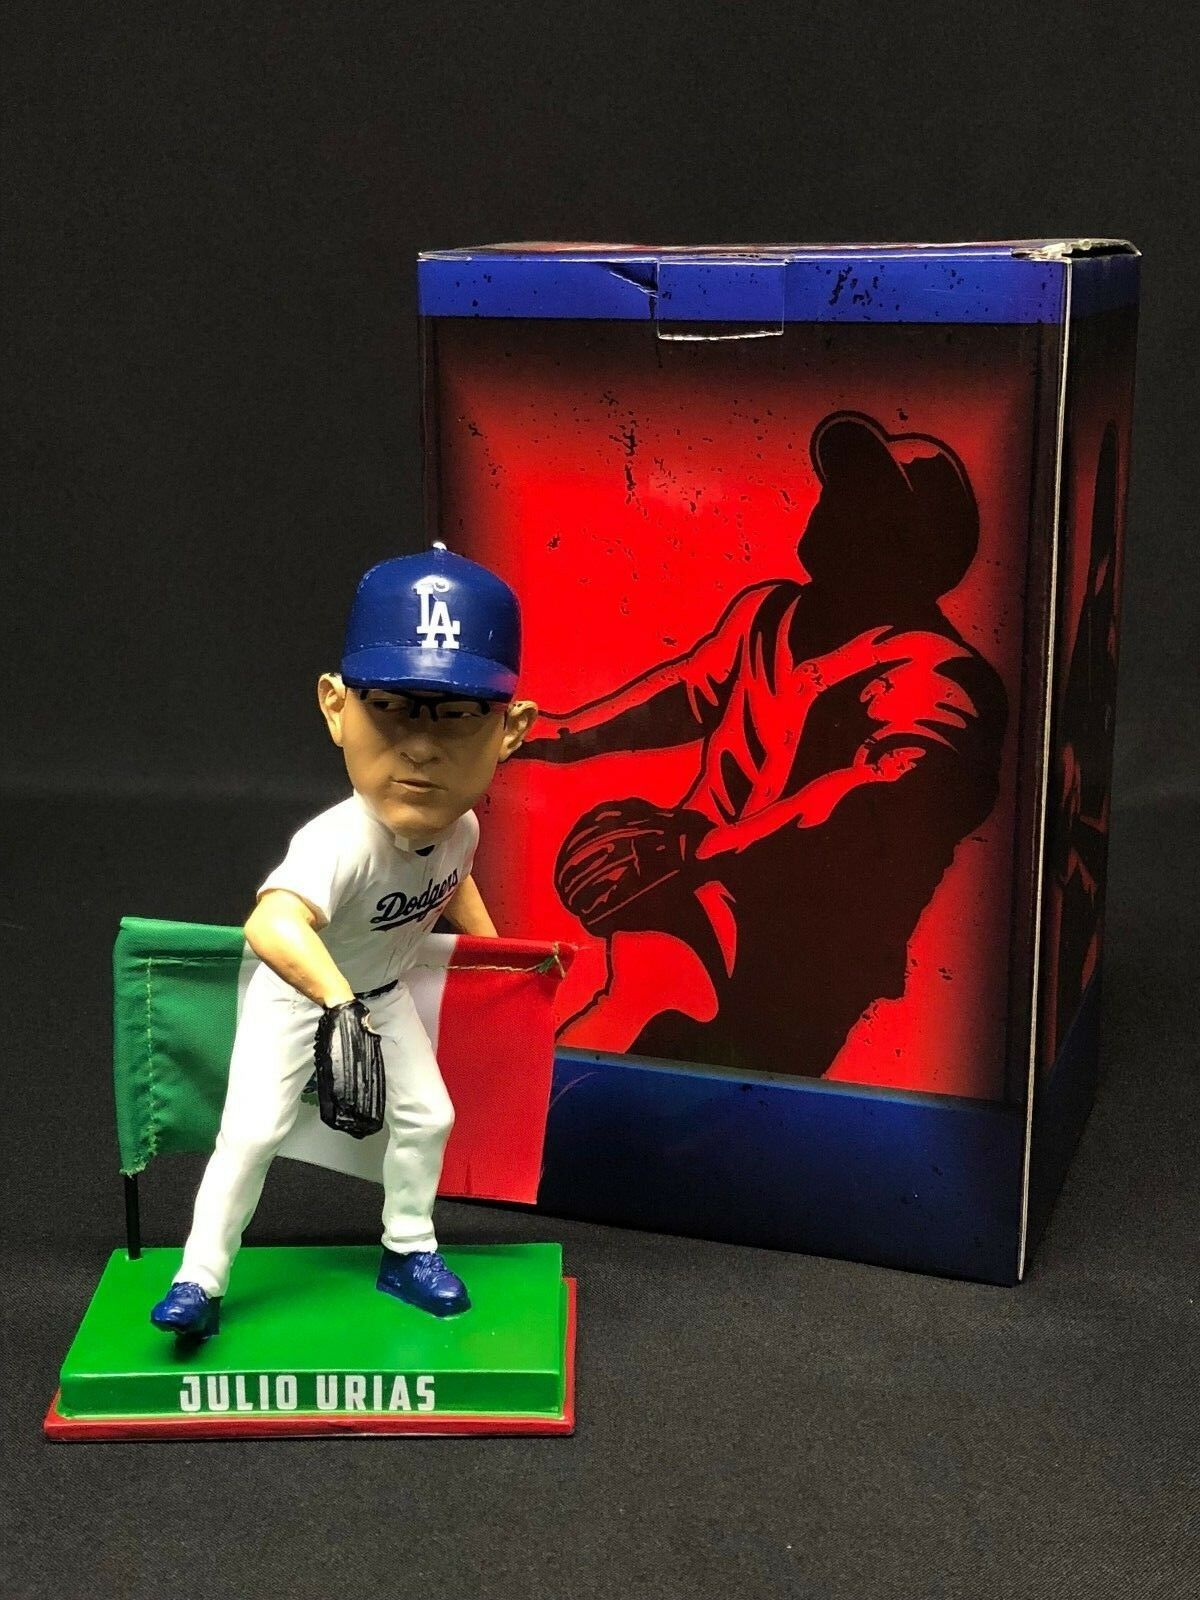 Julio Urias 2017 Forever Baseball Bobblehead MLB Licensed Limited *Viva Mexico